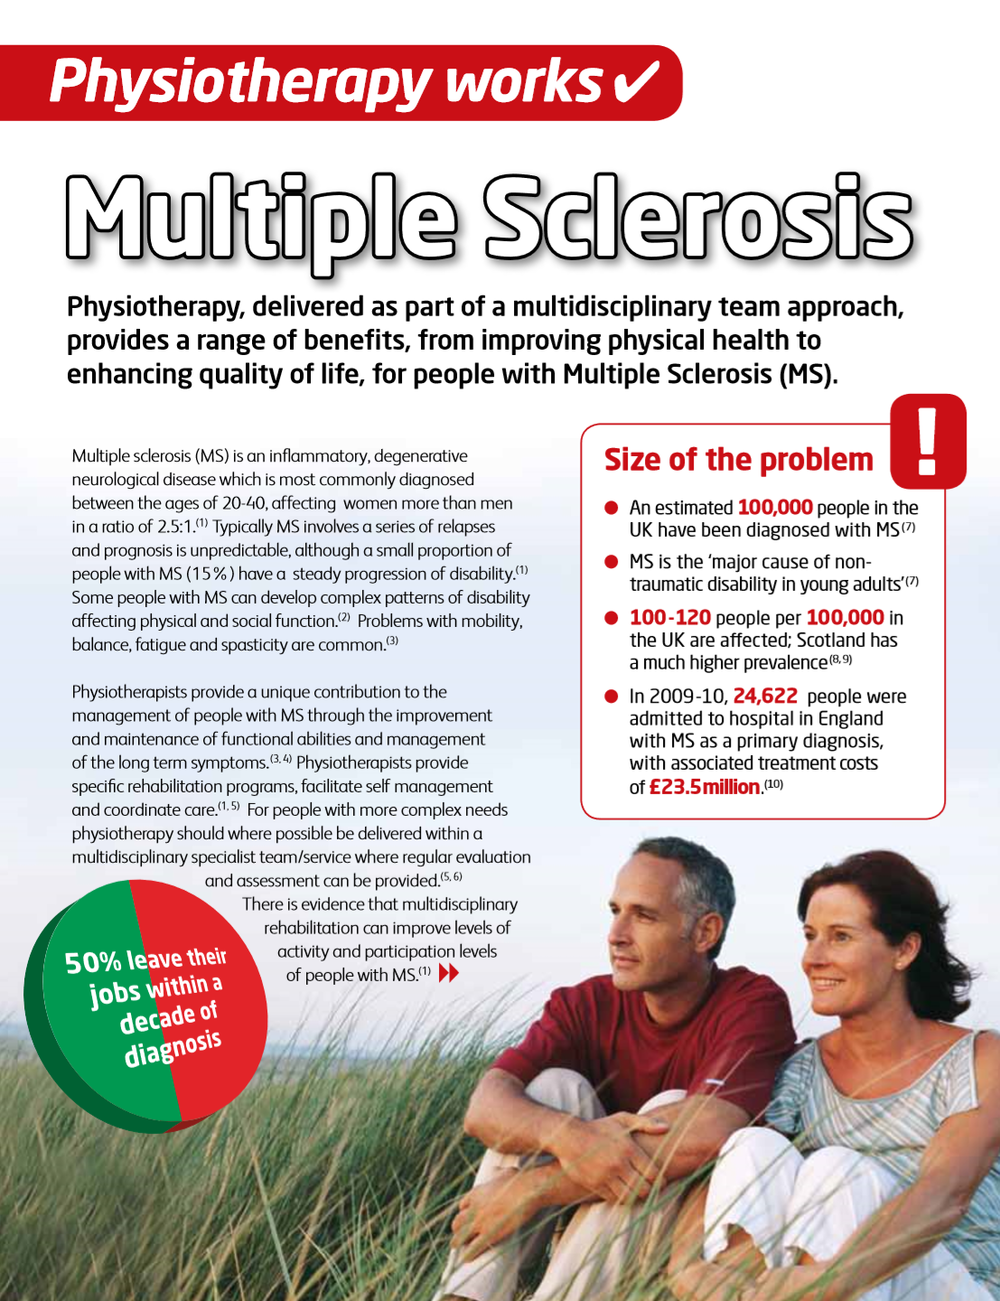 'Multiple Sclerosis' Physiotherapy Works - Chartered Society of Physiotherapy